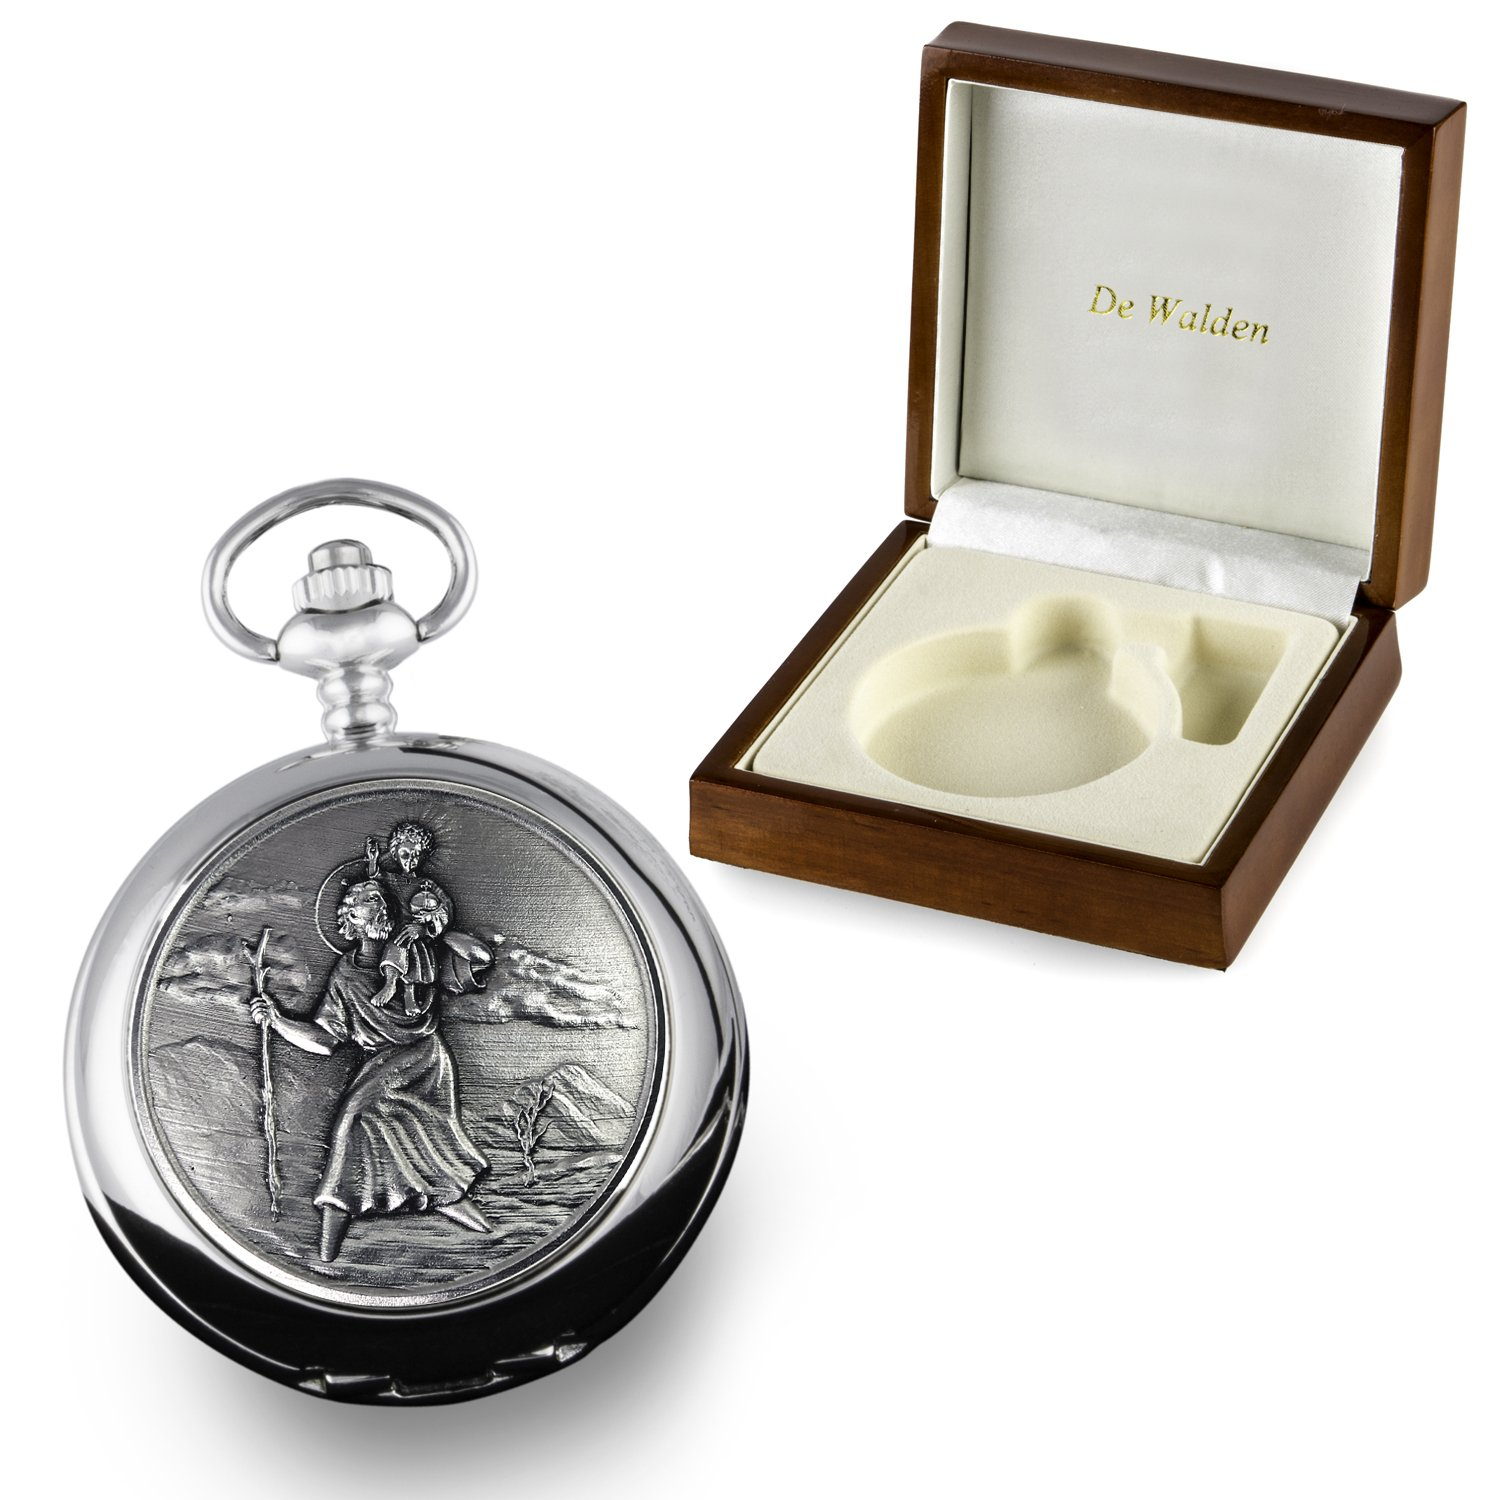 De Walden Boys Confirmation Gift, Engraved St Christopher Mother of Pearl Face Pocket Watch in a Wood Gift Box: Amazon.co.uk: Kitchen & Home